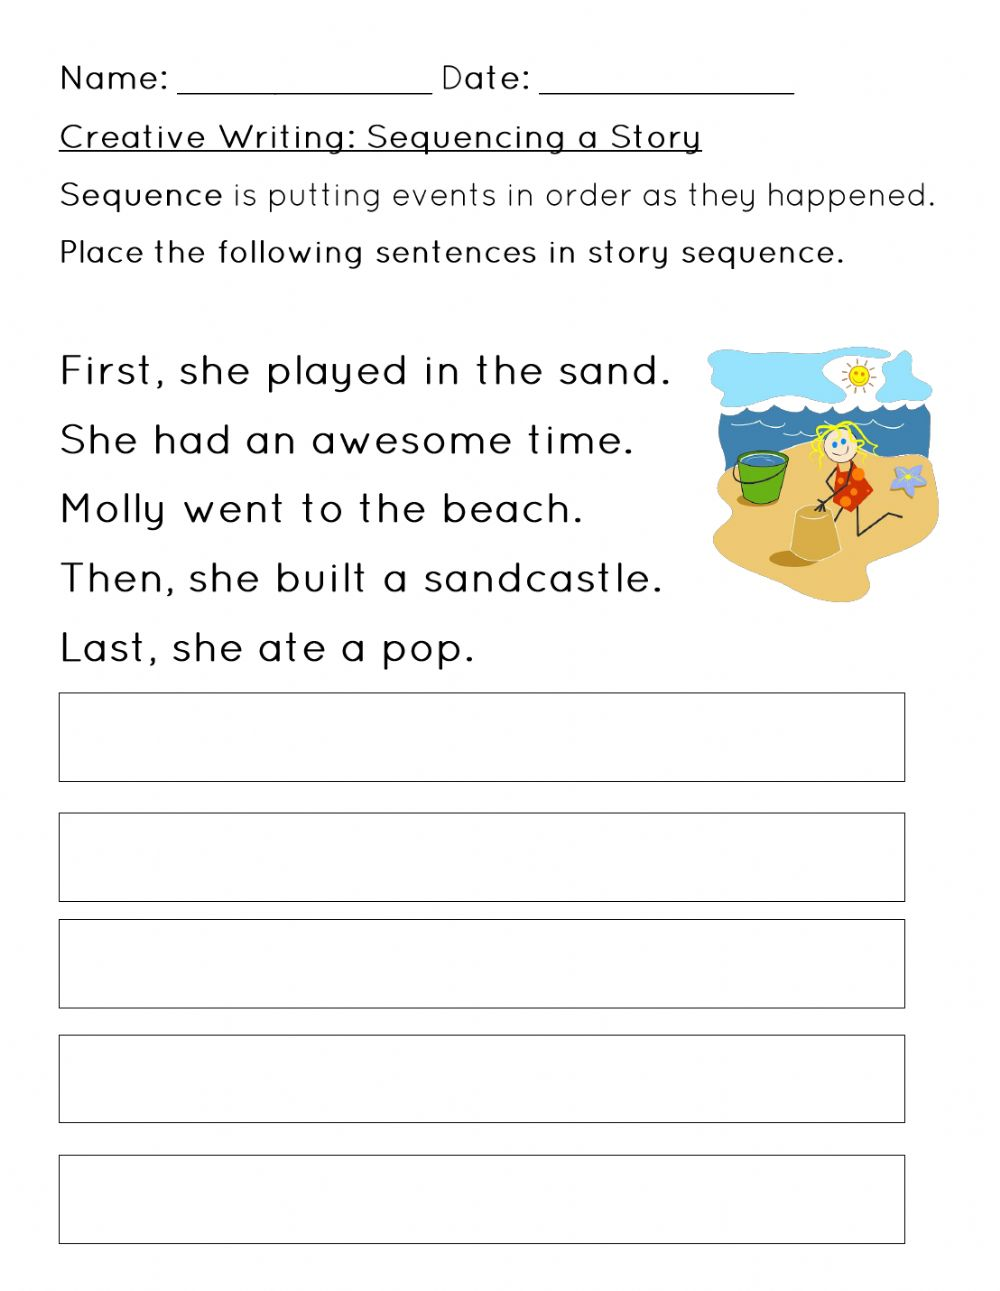 hight resolution of Sequencing a Story Worksheet 2 worksheet